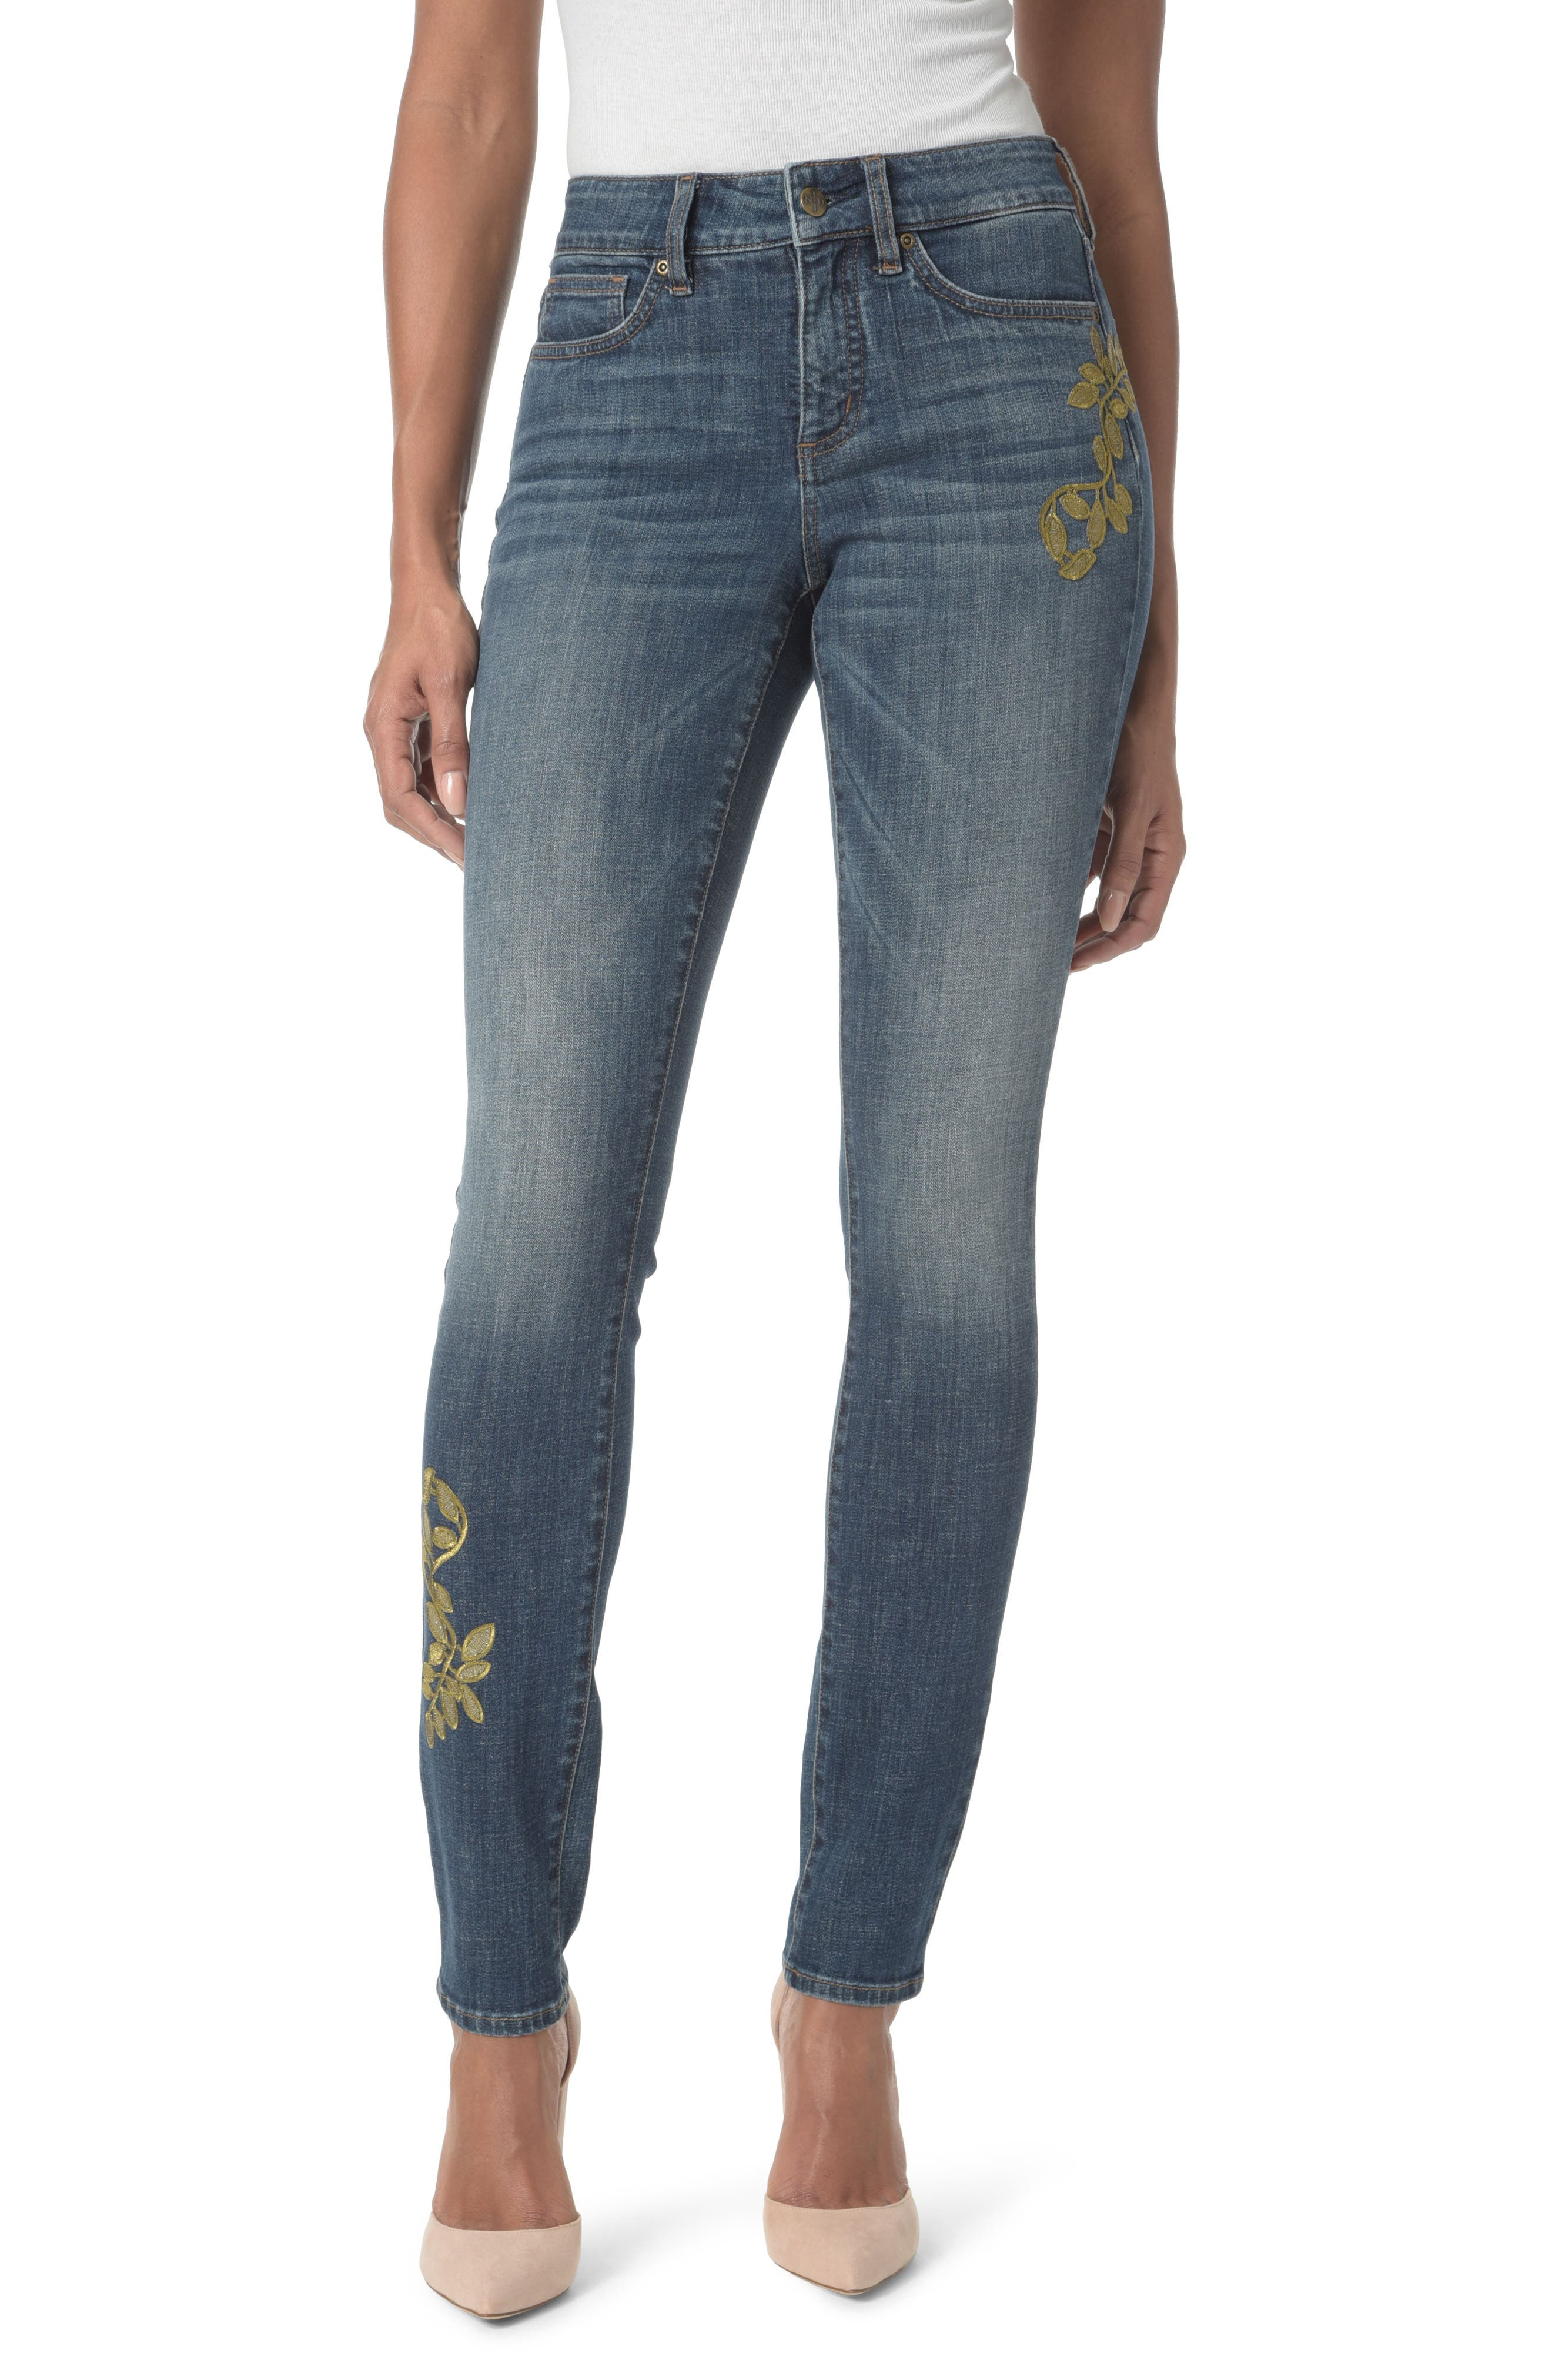 Alina High Waist Stretch Skinny Jeans,                             Main thumbnail 1, color,